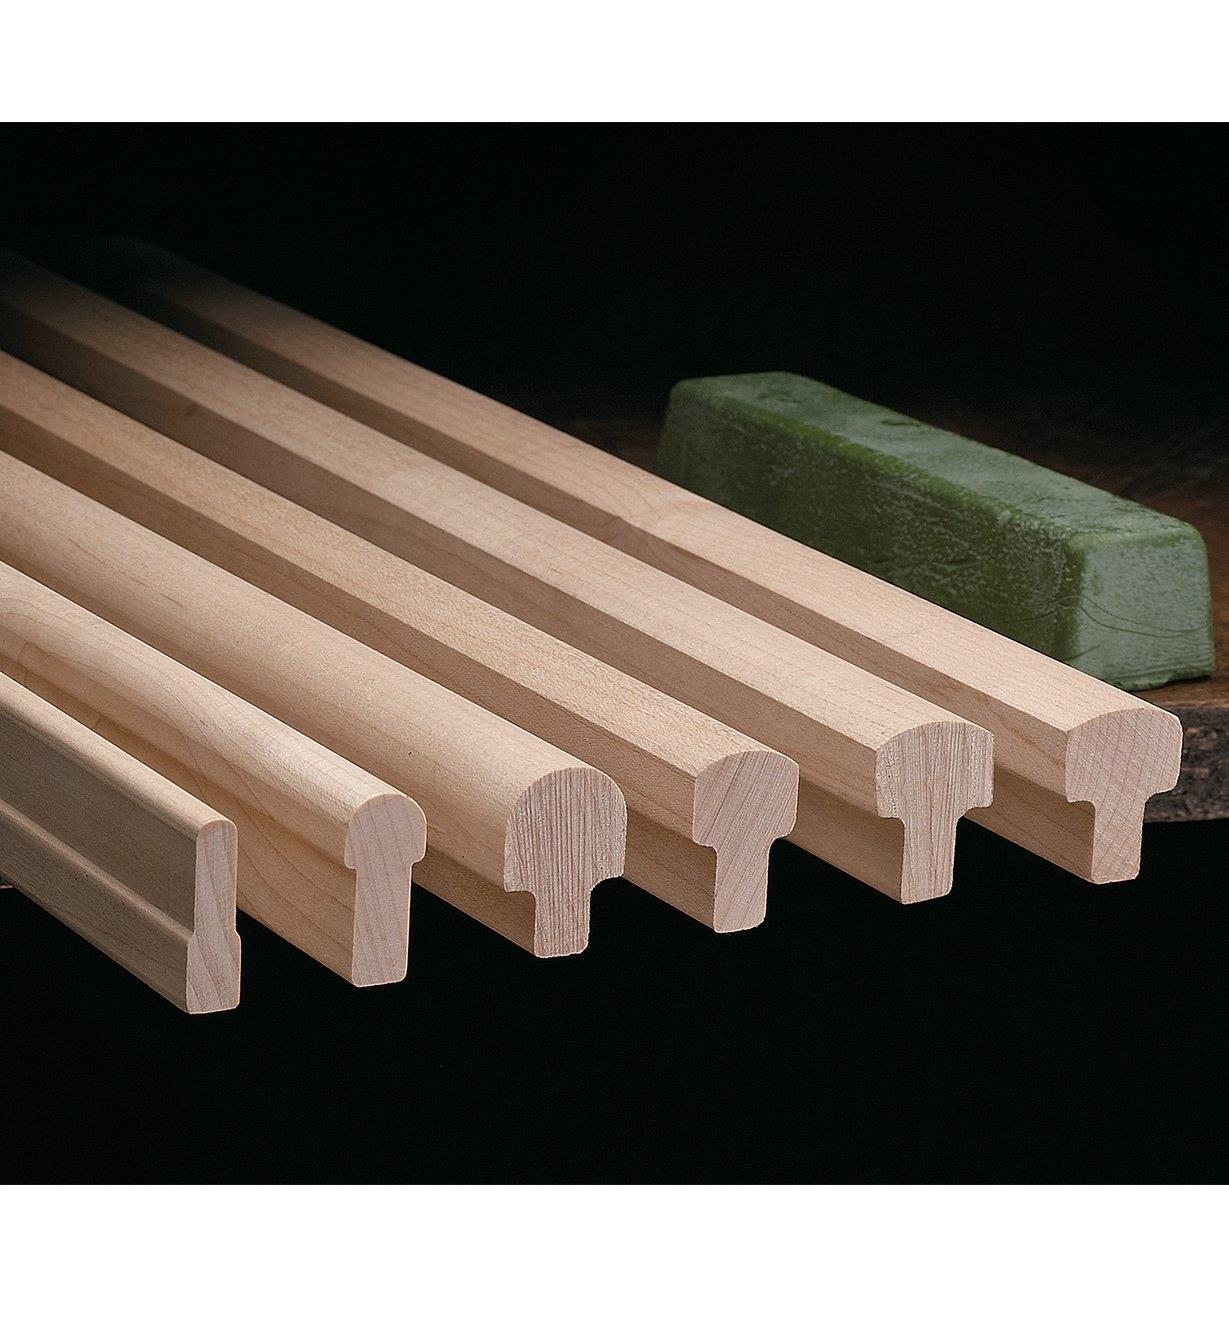 50M0101 - Lee Valley Wooden Sharpening Slips, set of 6